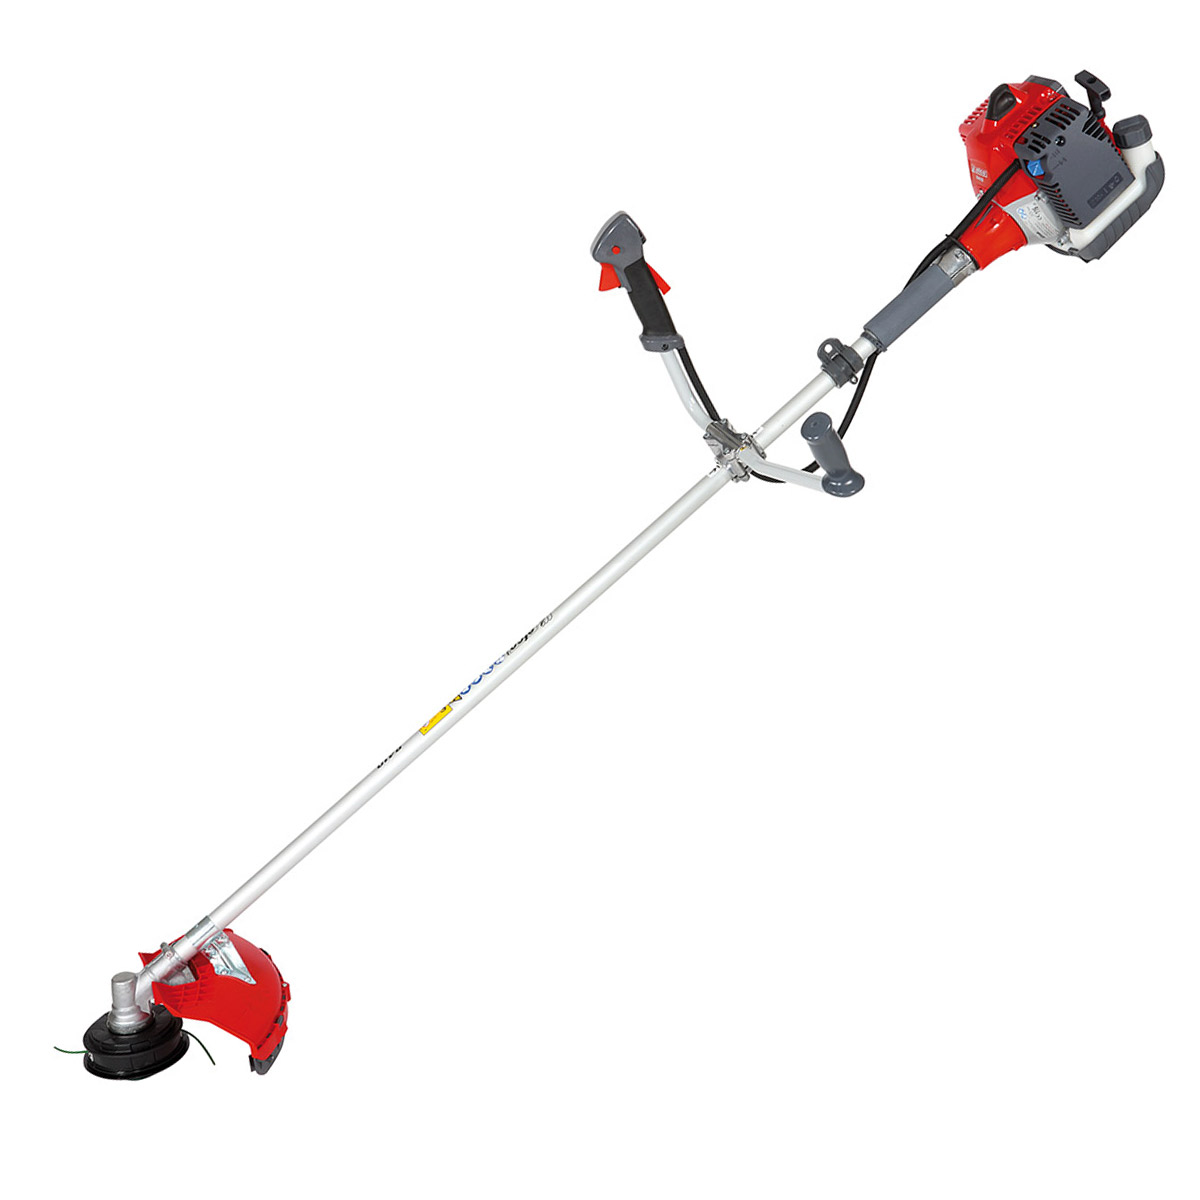 8410 professional brushcutters efco for 8410 3